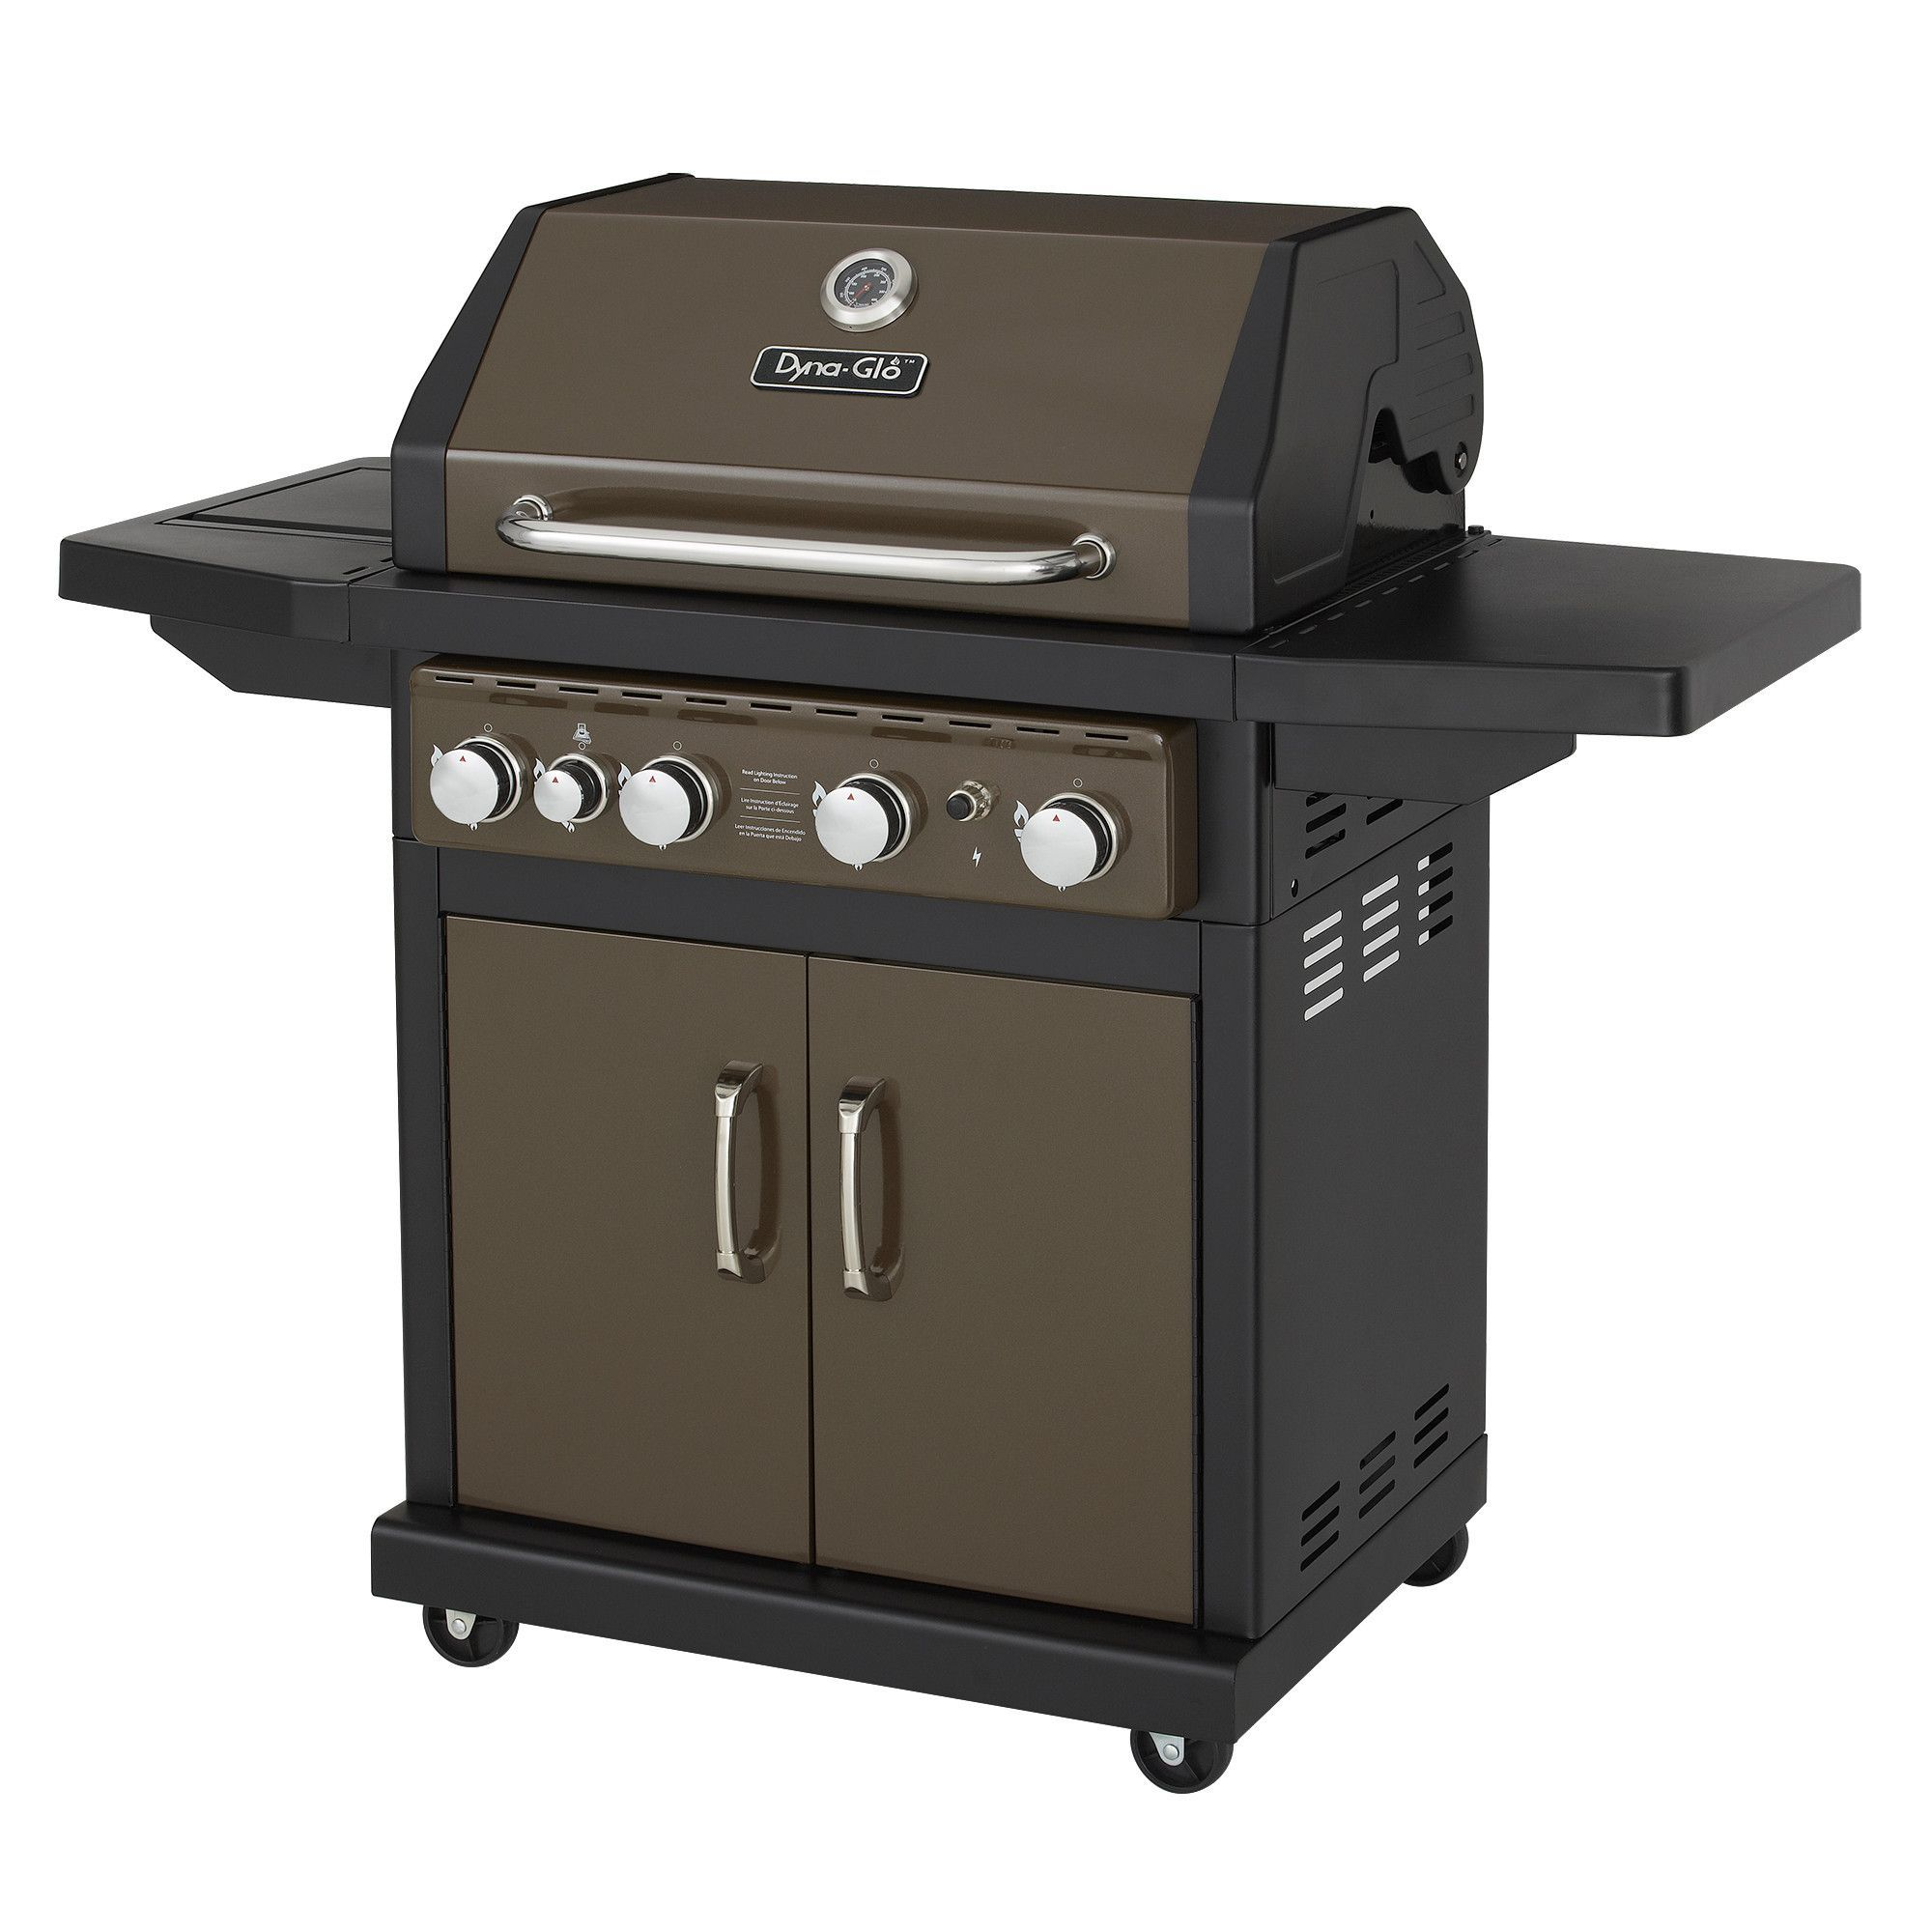 4 Burner Gas Grill With Side Burner And Electric Pulse Ignition Gas Grill Reviews Gas Grill Gas Bbq